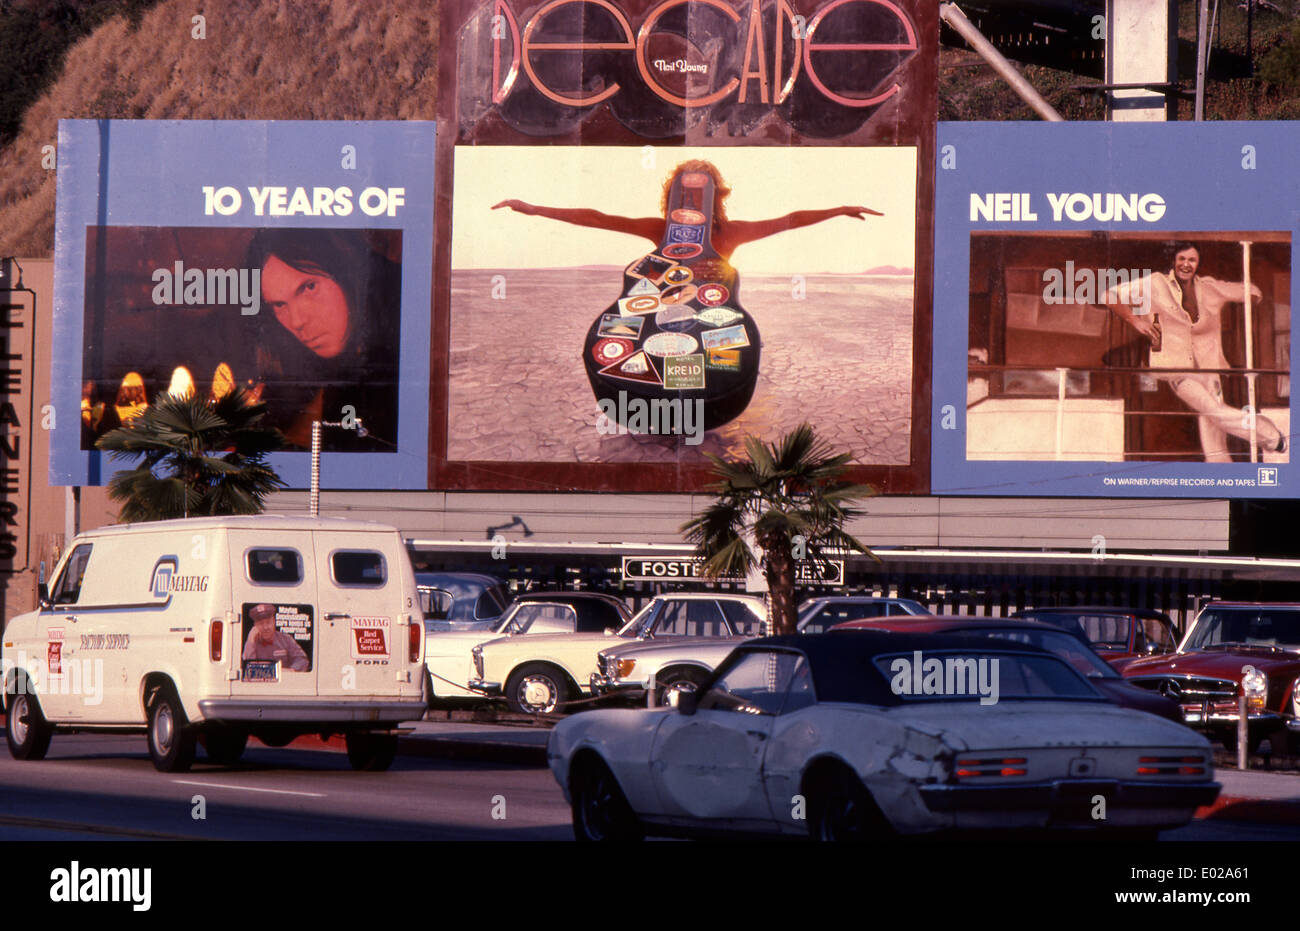 Neil Young billboard on the Sunset Strip circa 1977 - Stock Image